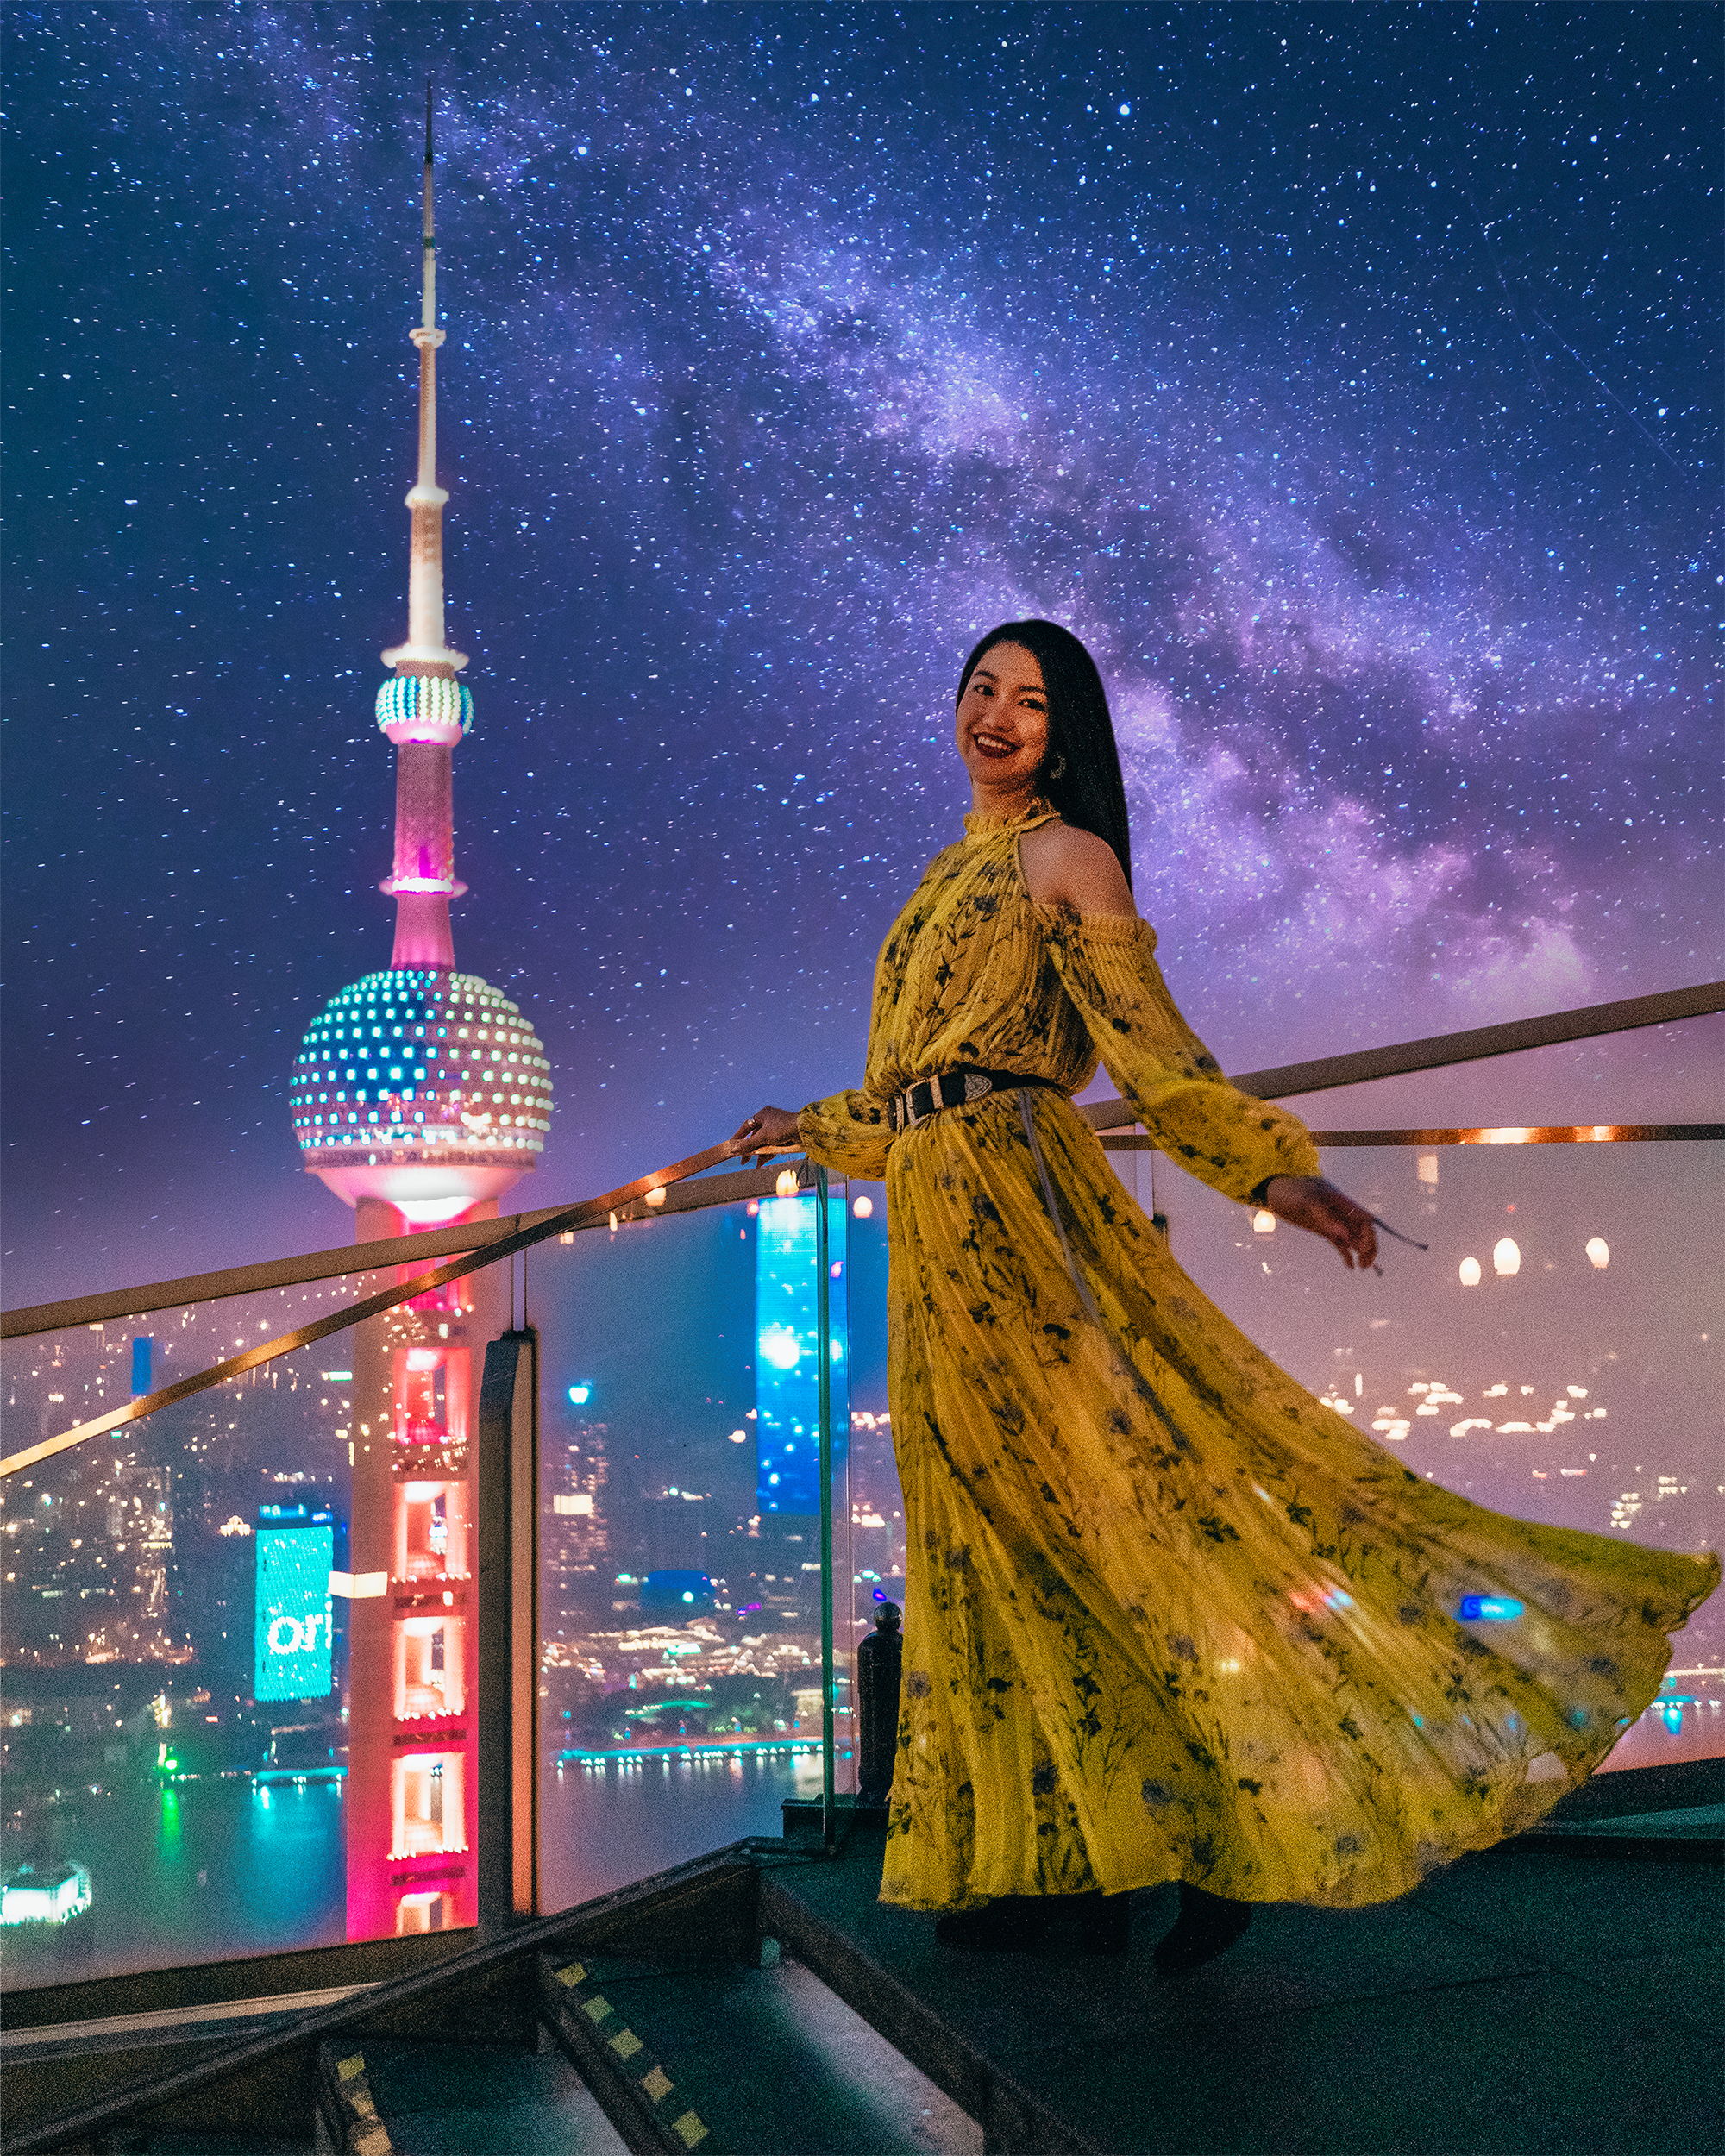 Shanghai's night-time skyline looks especially alluring from this high up.